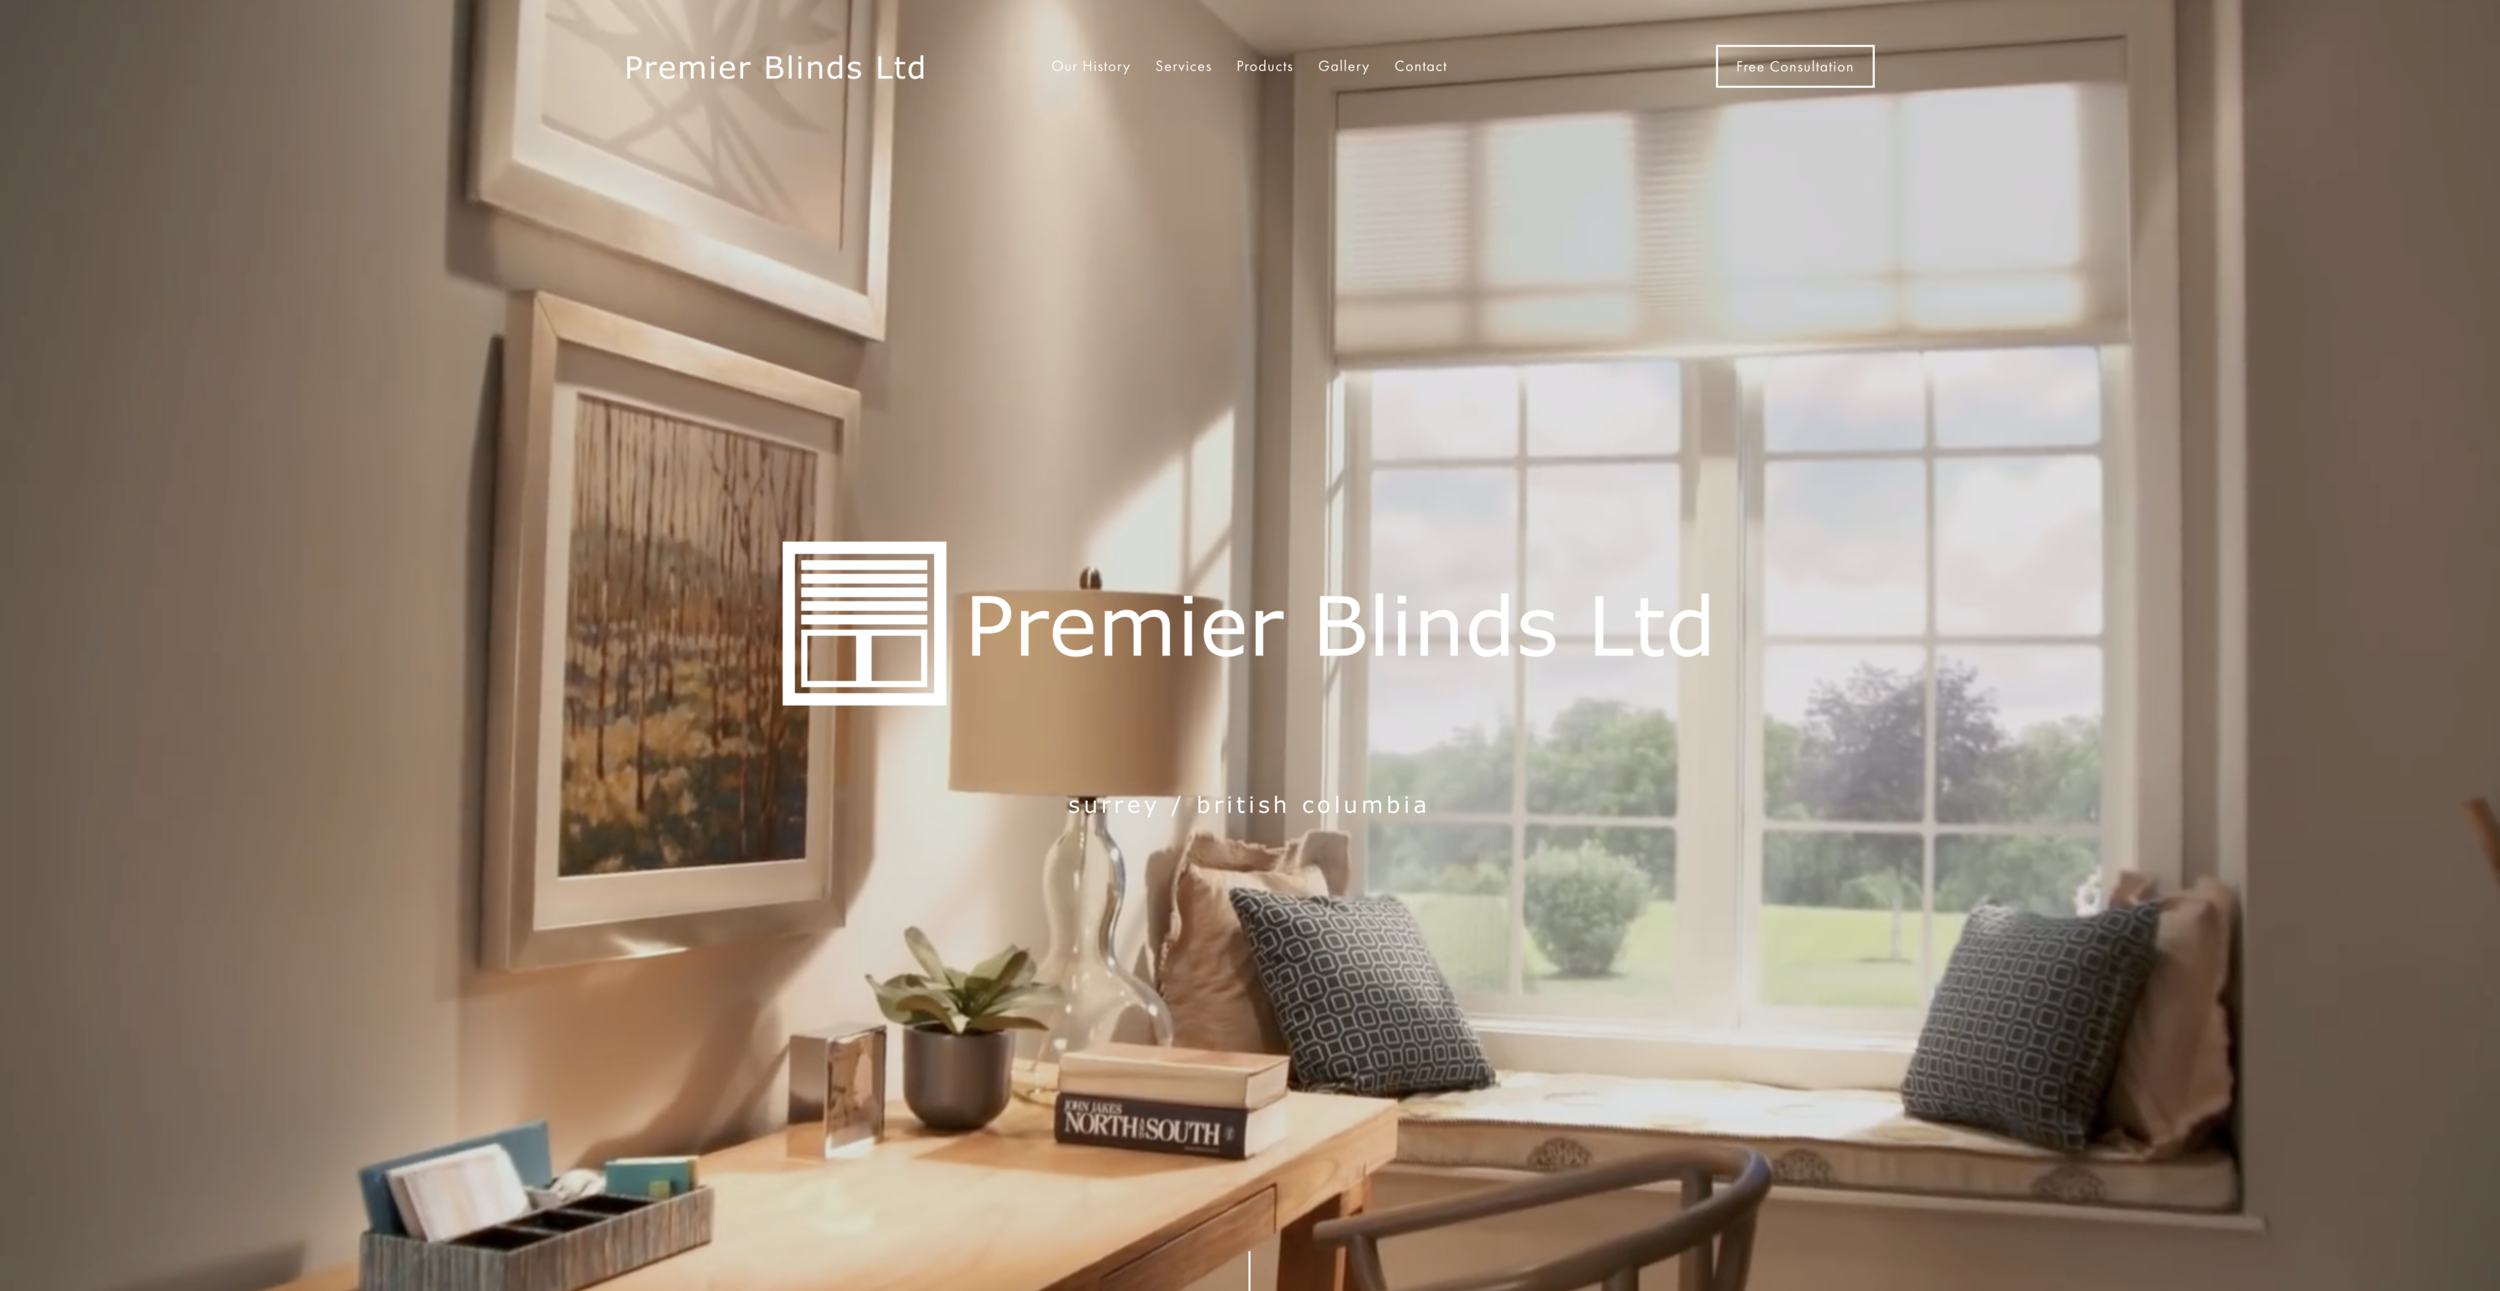 Premier Blinds Ltd - Donna Halme Designs was approached by Steve Sayers, owner of Premier Blinds Ltd who required a new website designed for their new company. Steve wanted a website that was more than just a presence but not too many pages. I designed this website so that it was easy to navigate and be informative. A video banner that peaks interest to visitors to their site was added. This banner also showcases the window treatment automation that they are known for. I suggested that they set up their own Instagram account and start taking photos of their completed projects and post. That way, Premier Blinds Ltd would have the latest images of client projects. In addition to the design of this website, I secured and registered a domain name, set up an email account for Steve, created a company logo, and Facebook cover image.